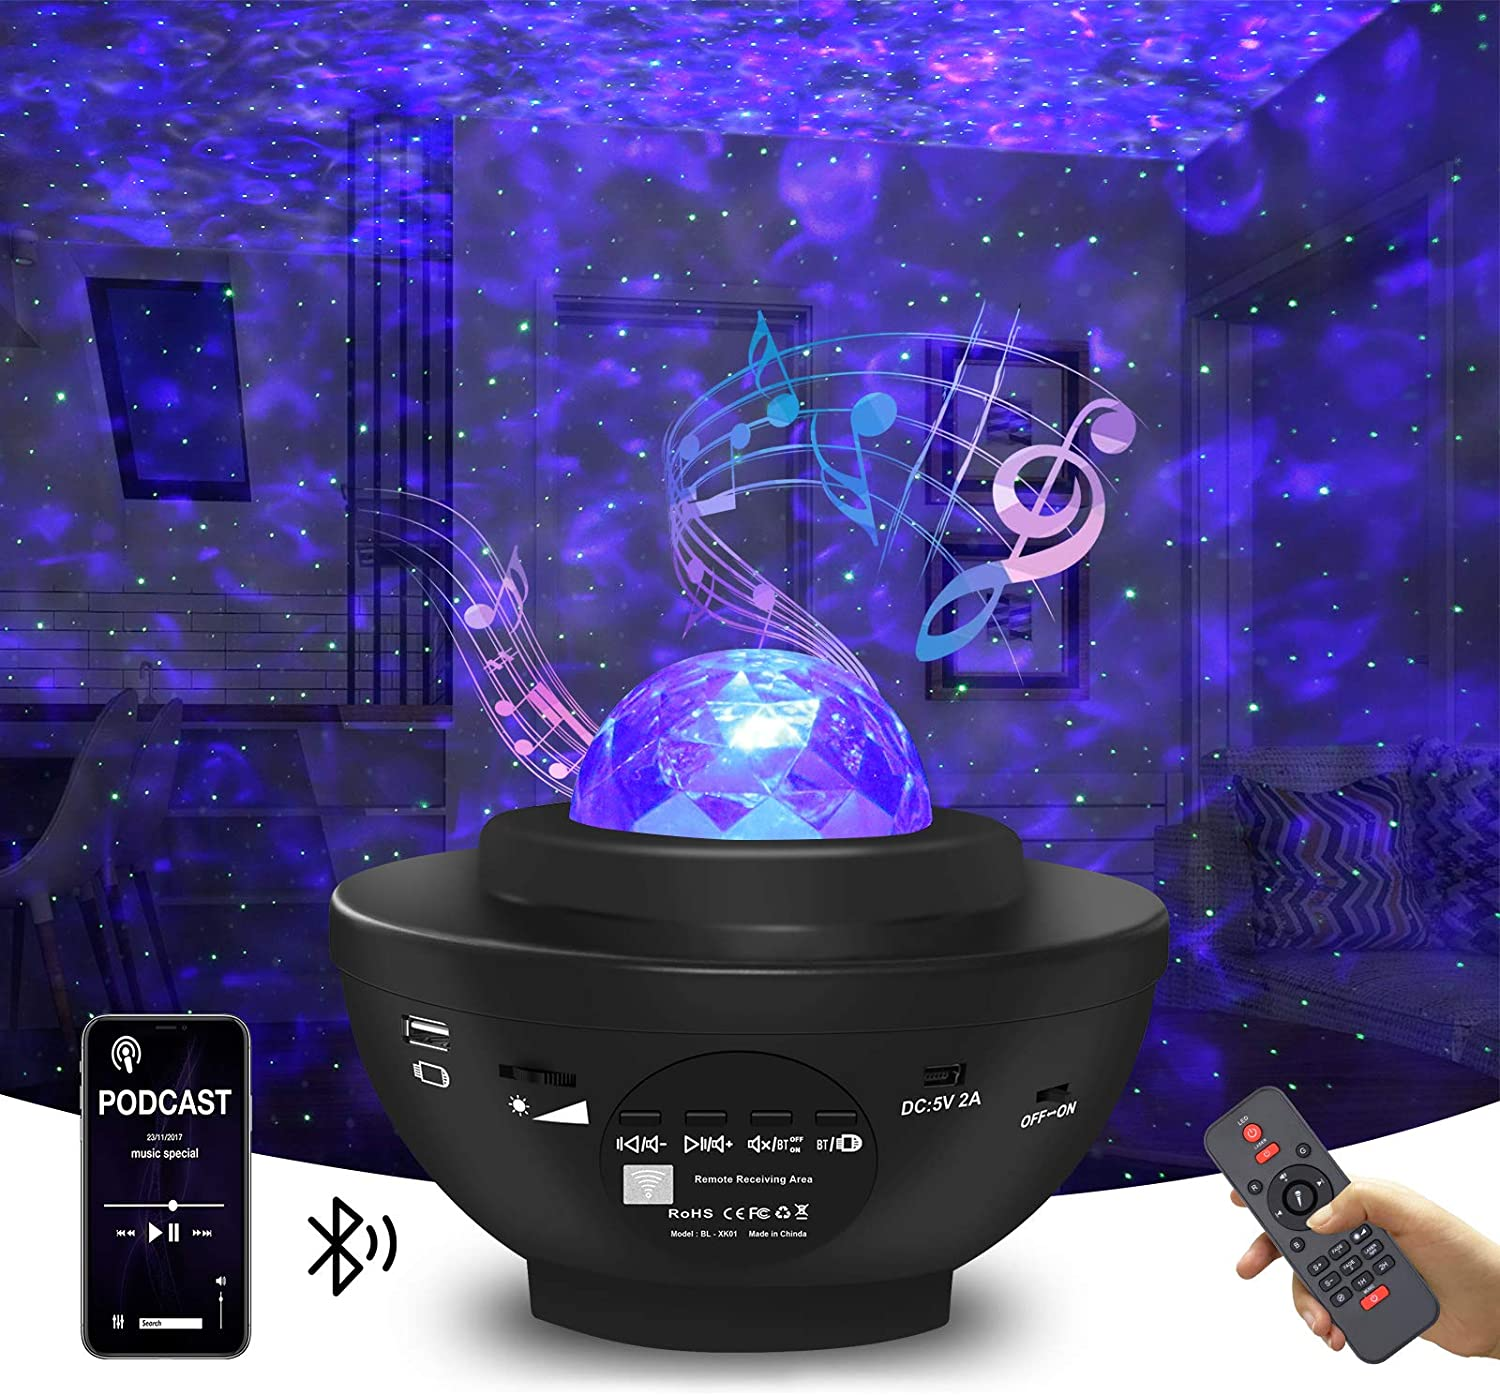 Star Projector Galaxy Projector Night Light for Bedroom Sky with Music Speaker and Remote Control LED Nebula Cloud & Moving Ocean Wave for Bedroom Game Rooms Home Theatre